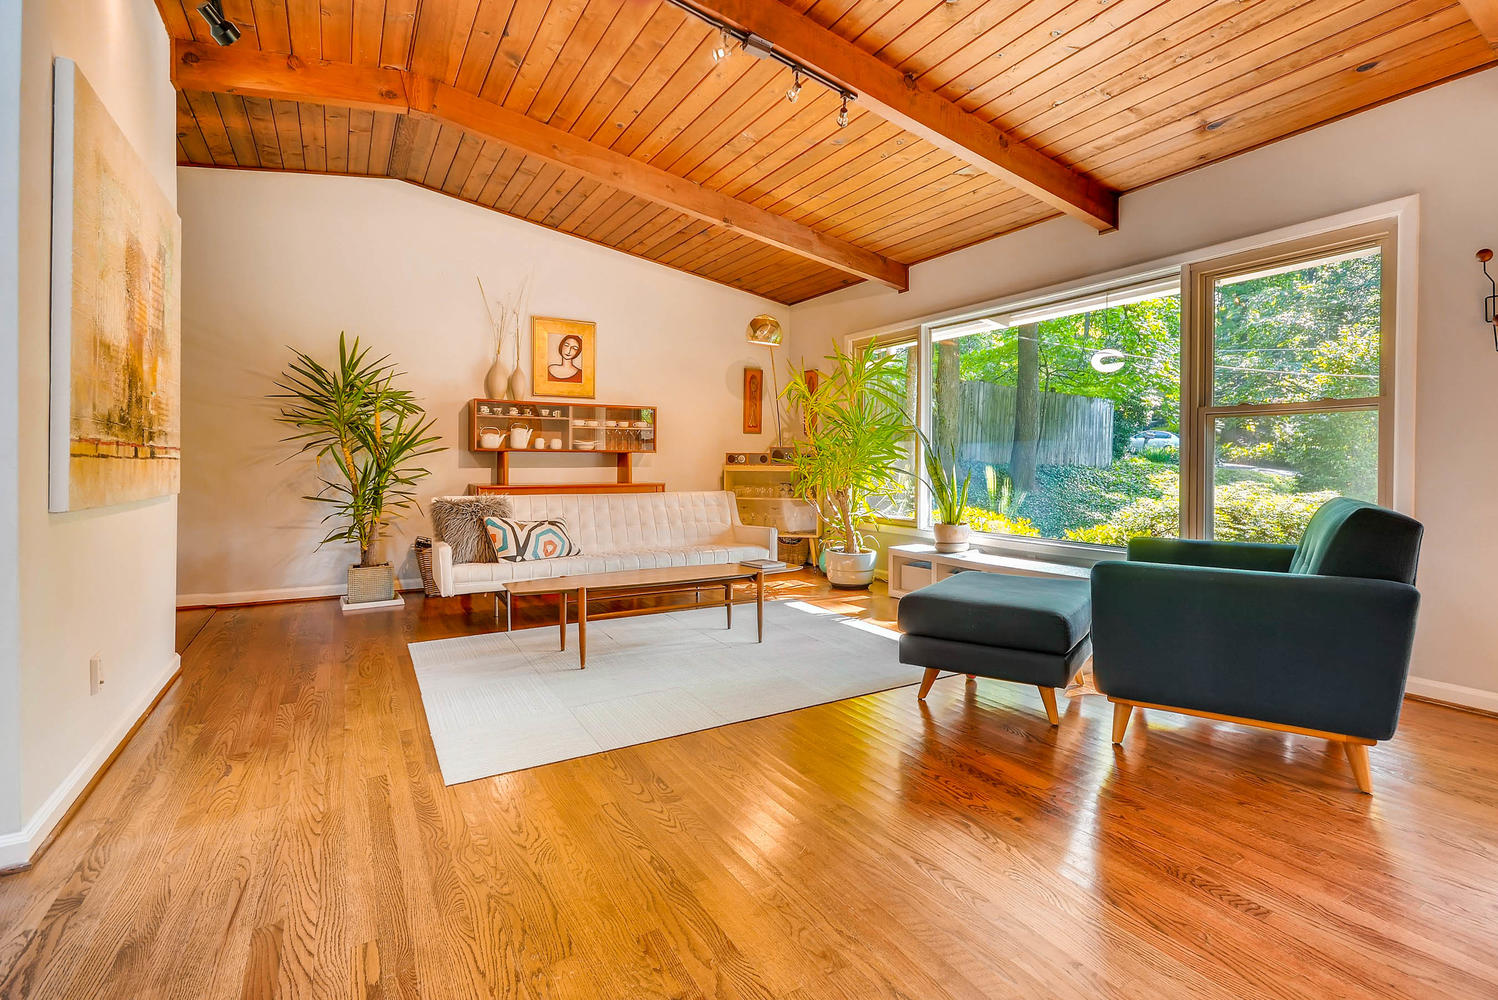 atlanta midcentury modern homes for sale Archives  domoREALTY